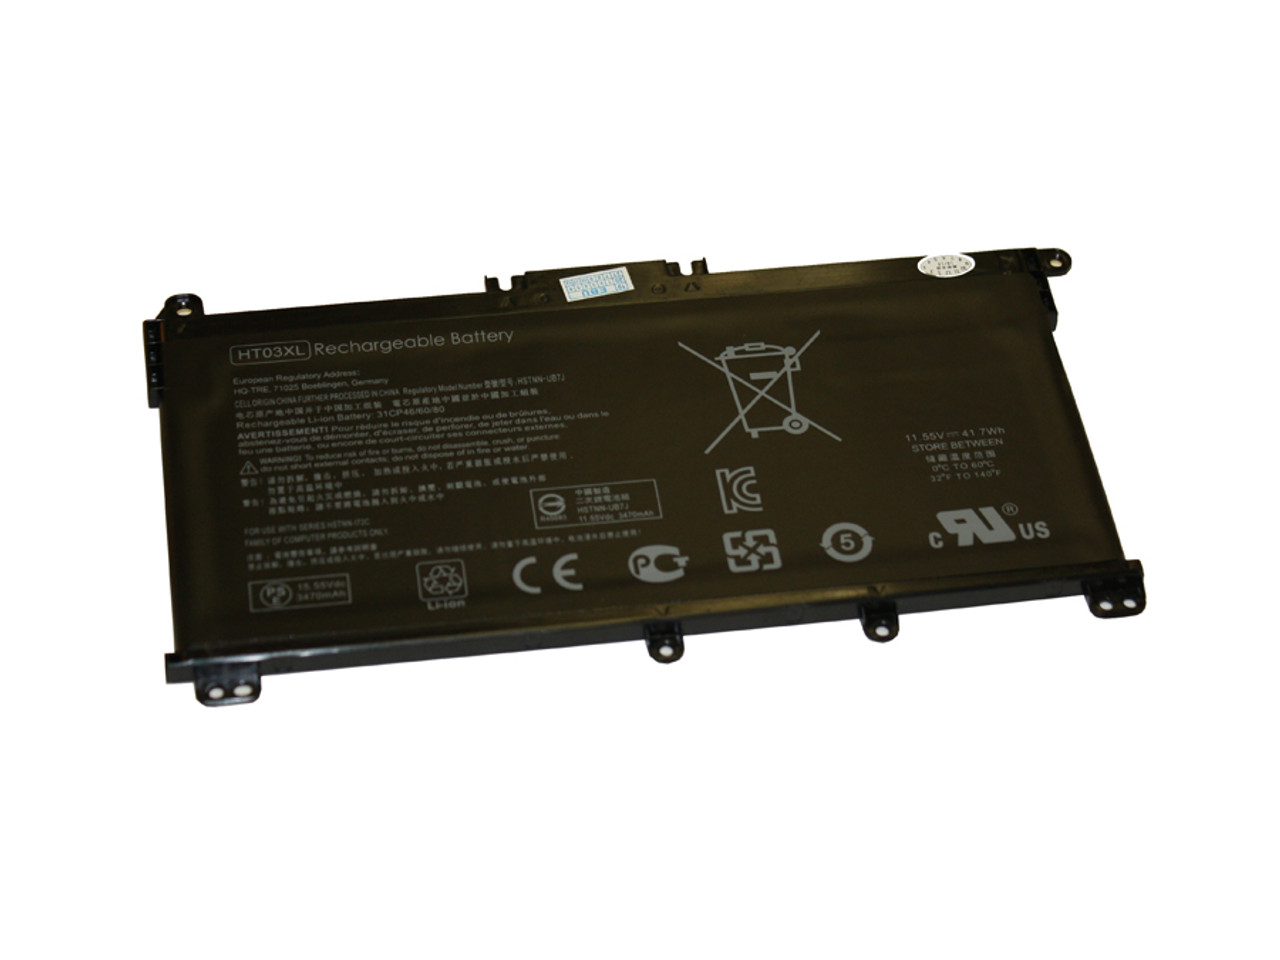 Replacement  Battery for HP - COMPAQ HP 240 G7, 246 G7, 250 G7, 255 G7, 256 G7, 340 G5, 348 G5